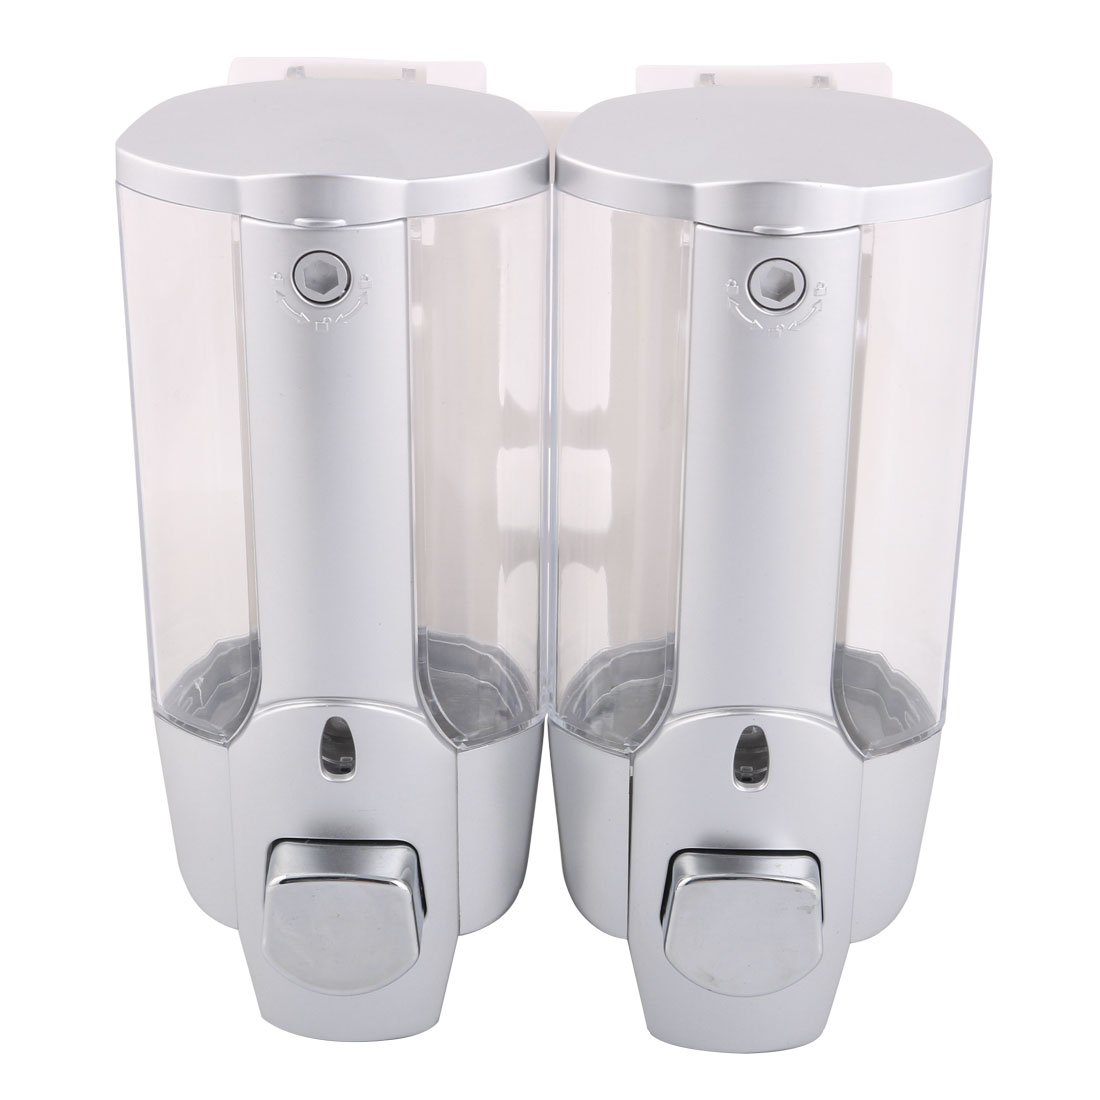 unique bargains home hotel plastic wall mounted locked touch soap shampoo shower gel dispenser storage container - Wall Mounted Soap Dispenser